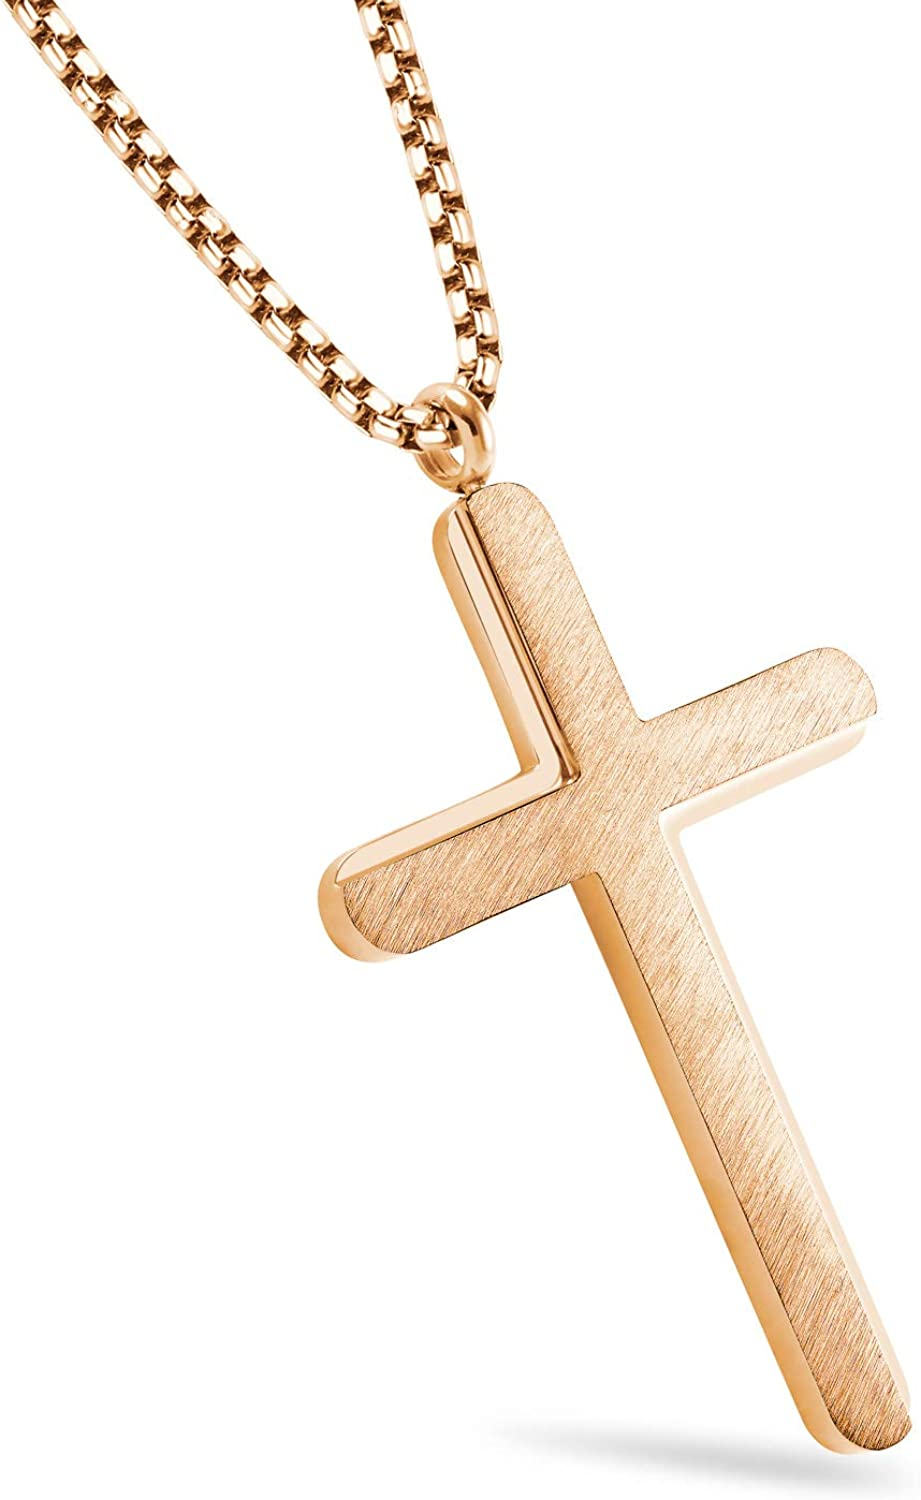 555Jewelry Cross Necklace for Men Women Brushed Stainless Steel Pendant, 18-24